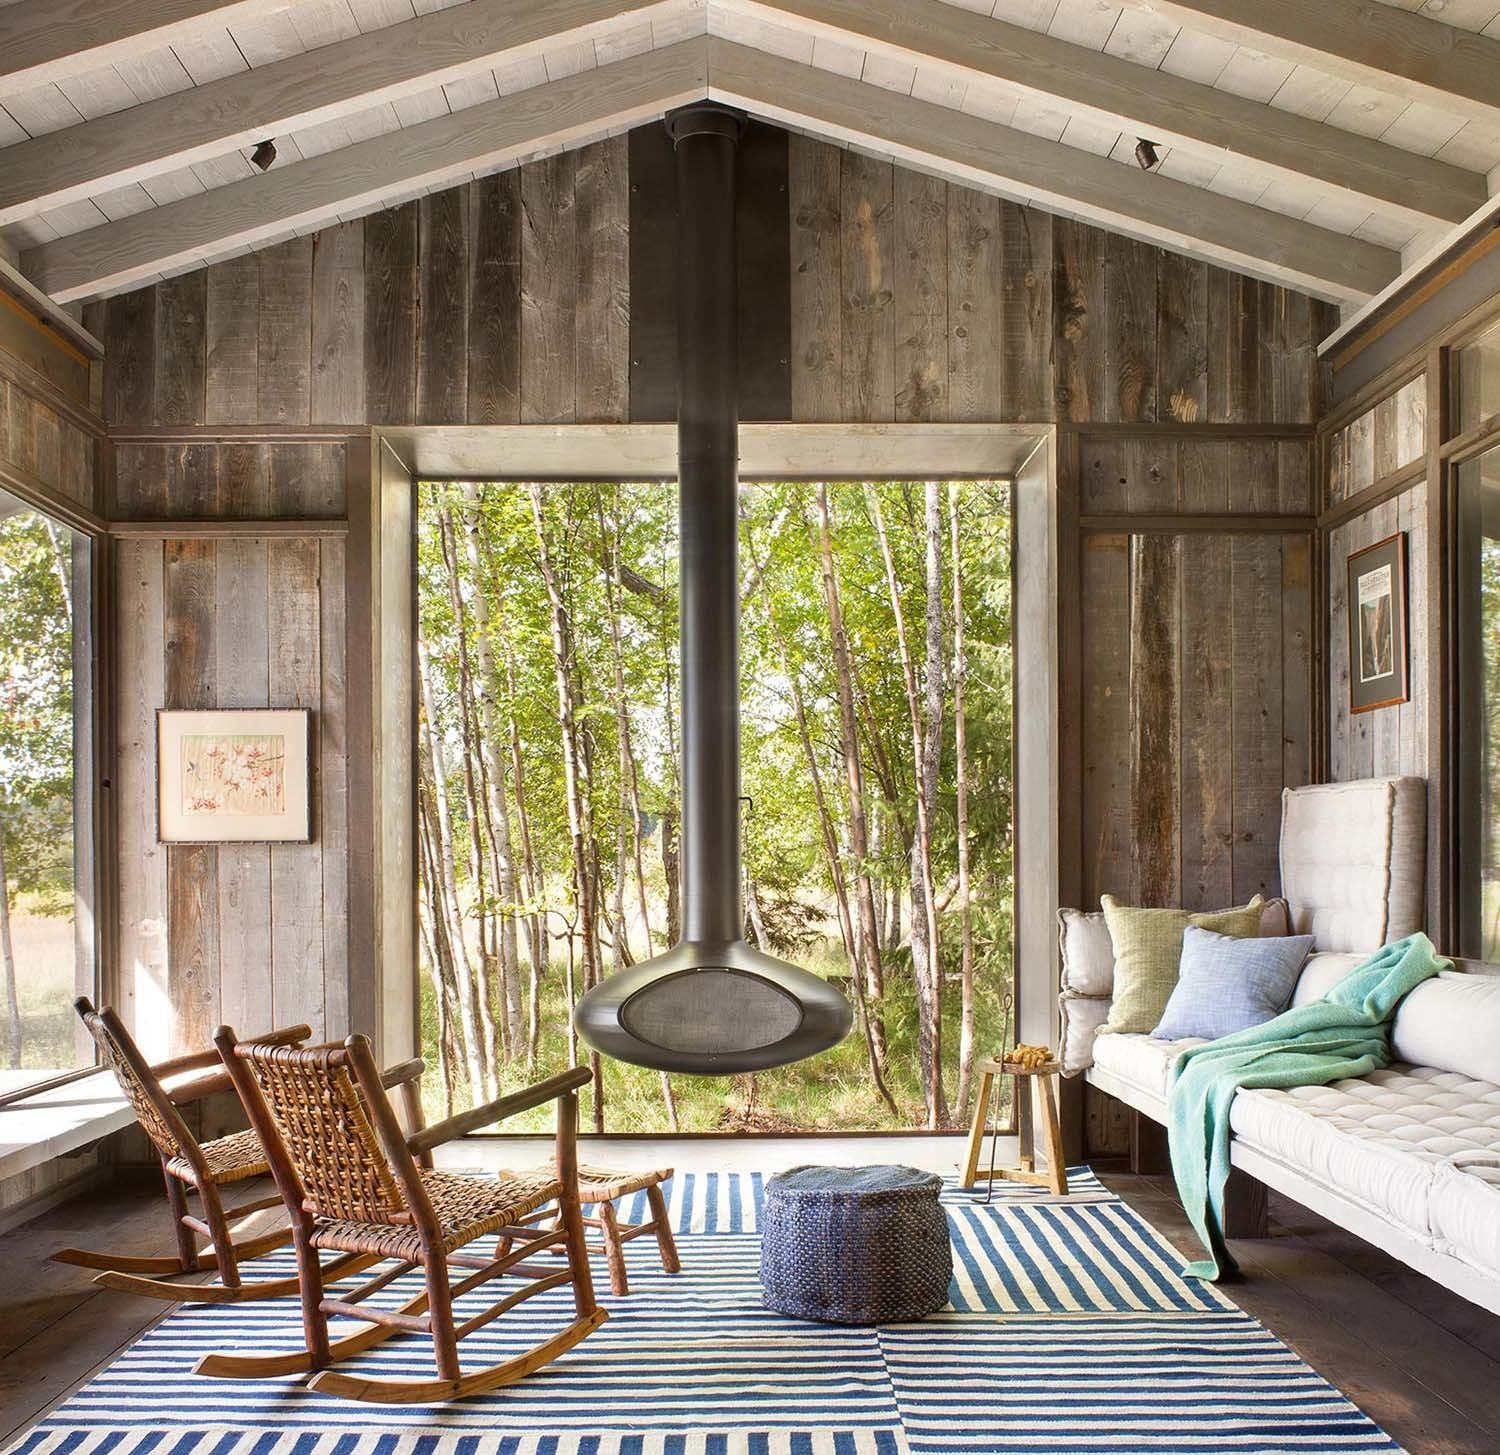 Rustic Interior Design With Shutters: Modern-Rustic Cabin